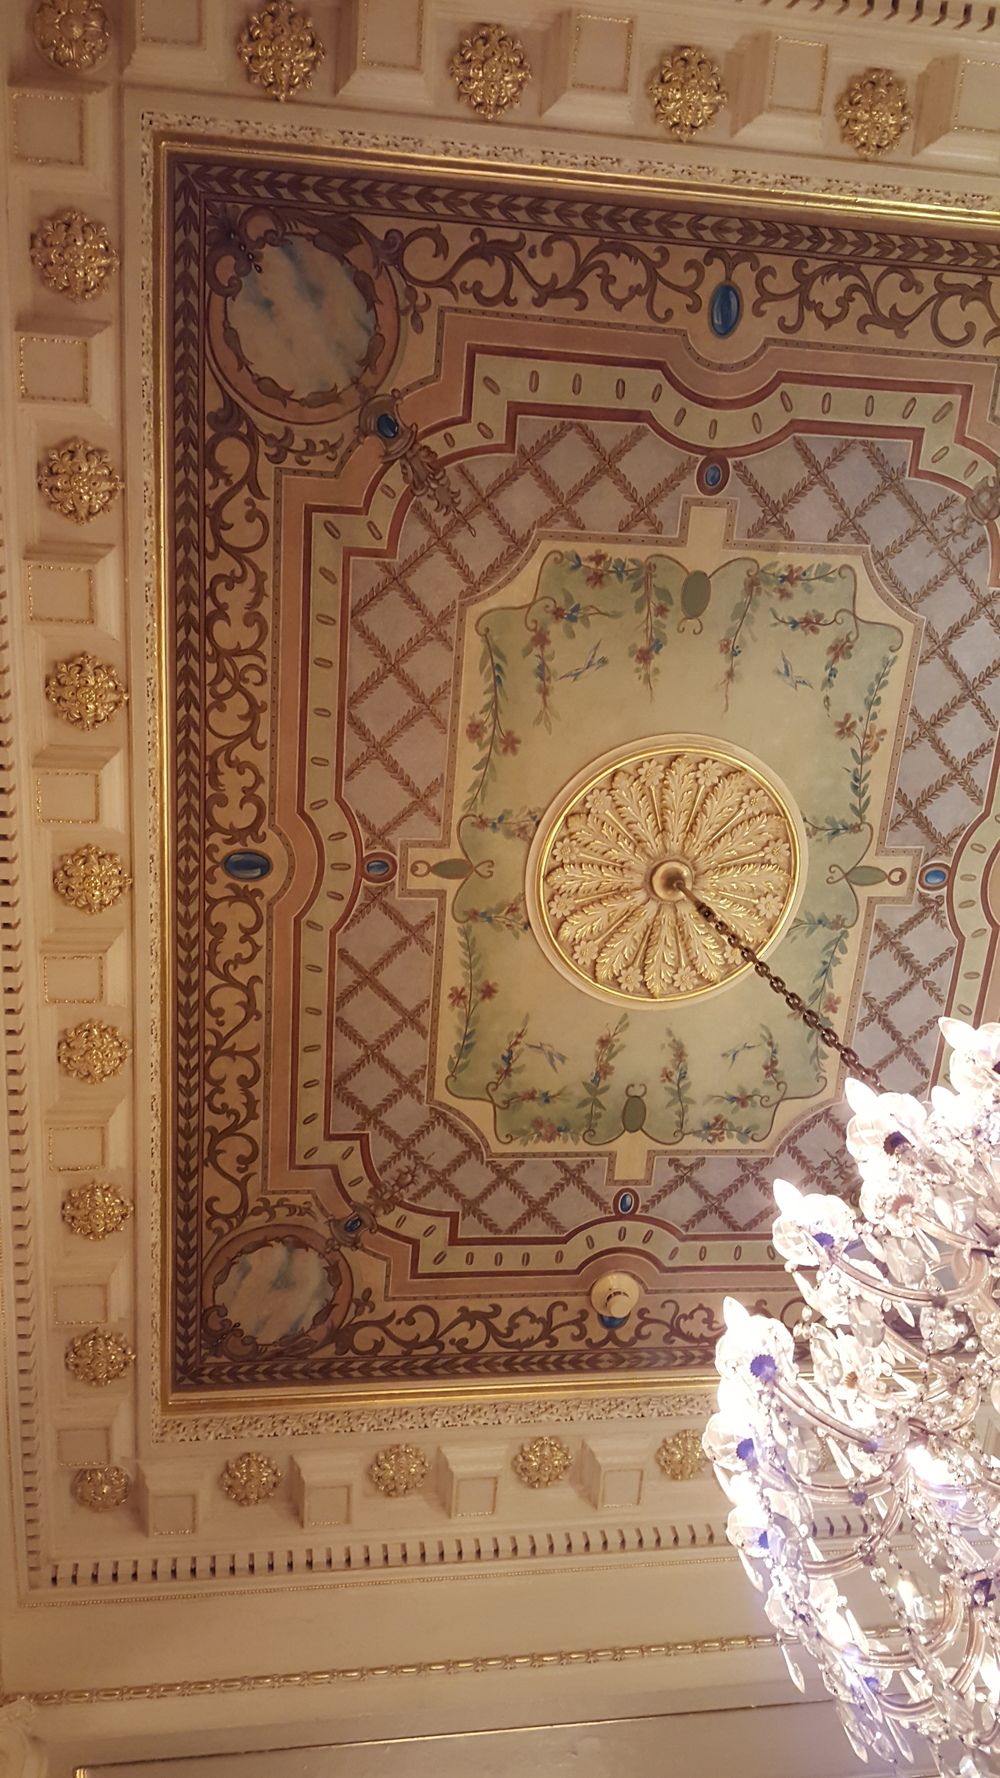 Incredible ceiling detail in one of the hotels.